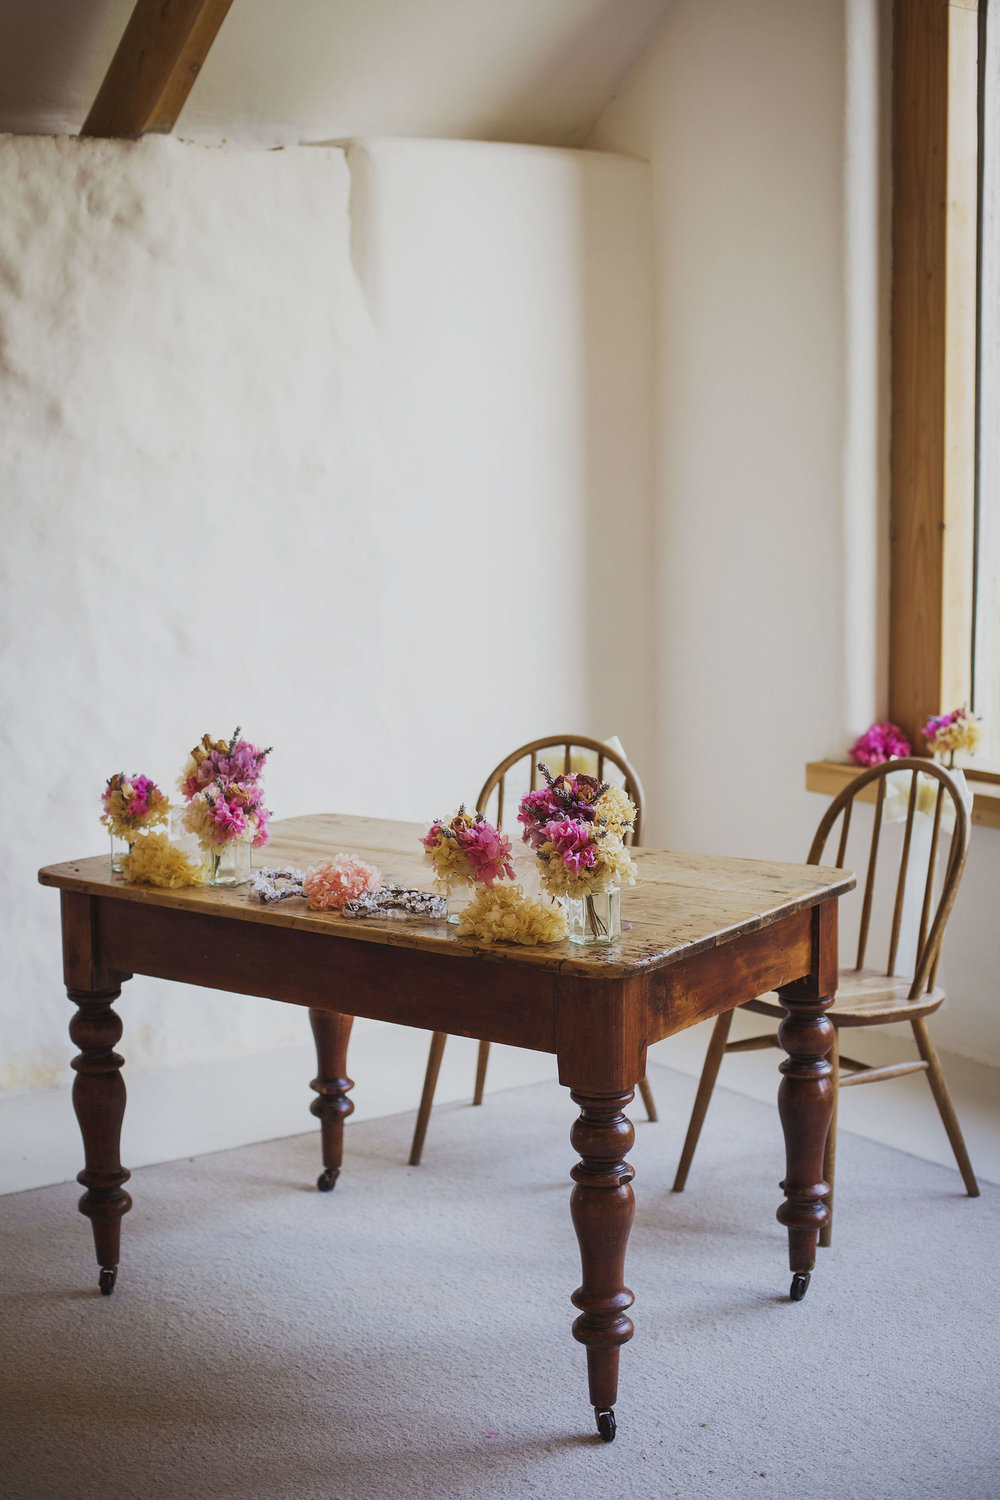 nantwen wedding venue table with flowers